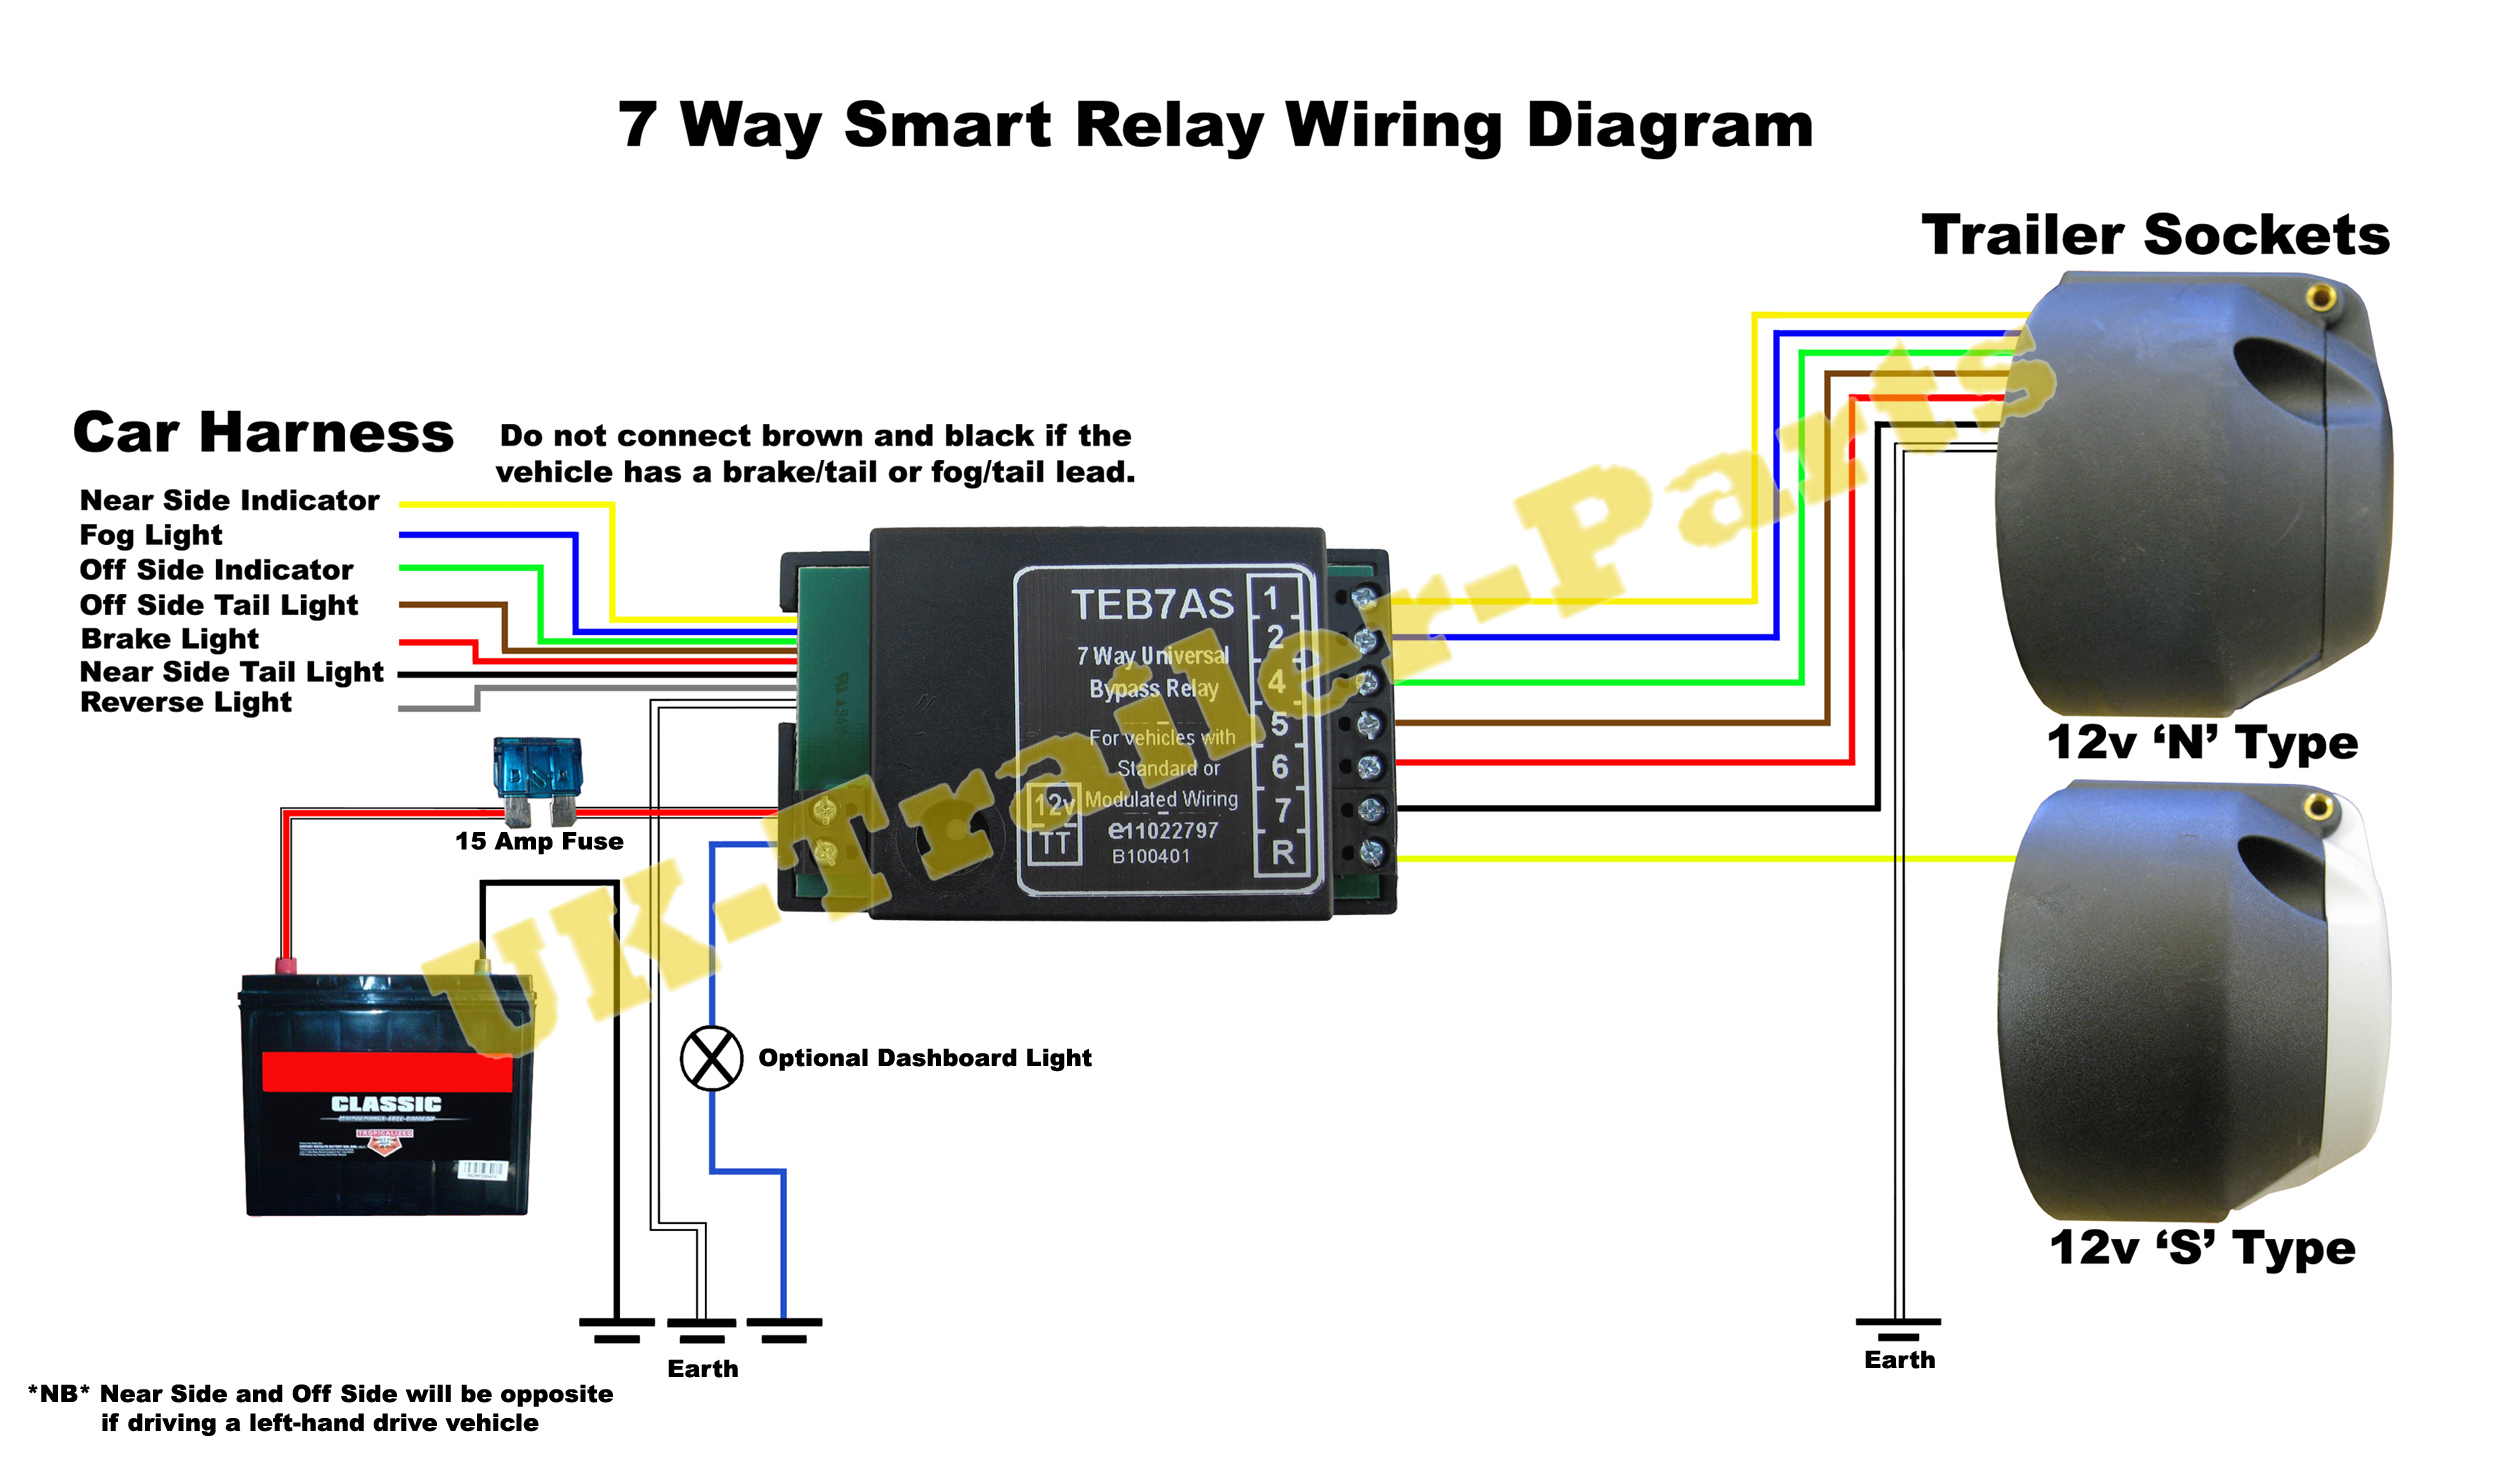 7 Way Universal Bypass Relay Wiring Diagram Uk Trailer Parts 12v